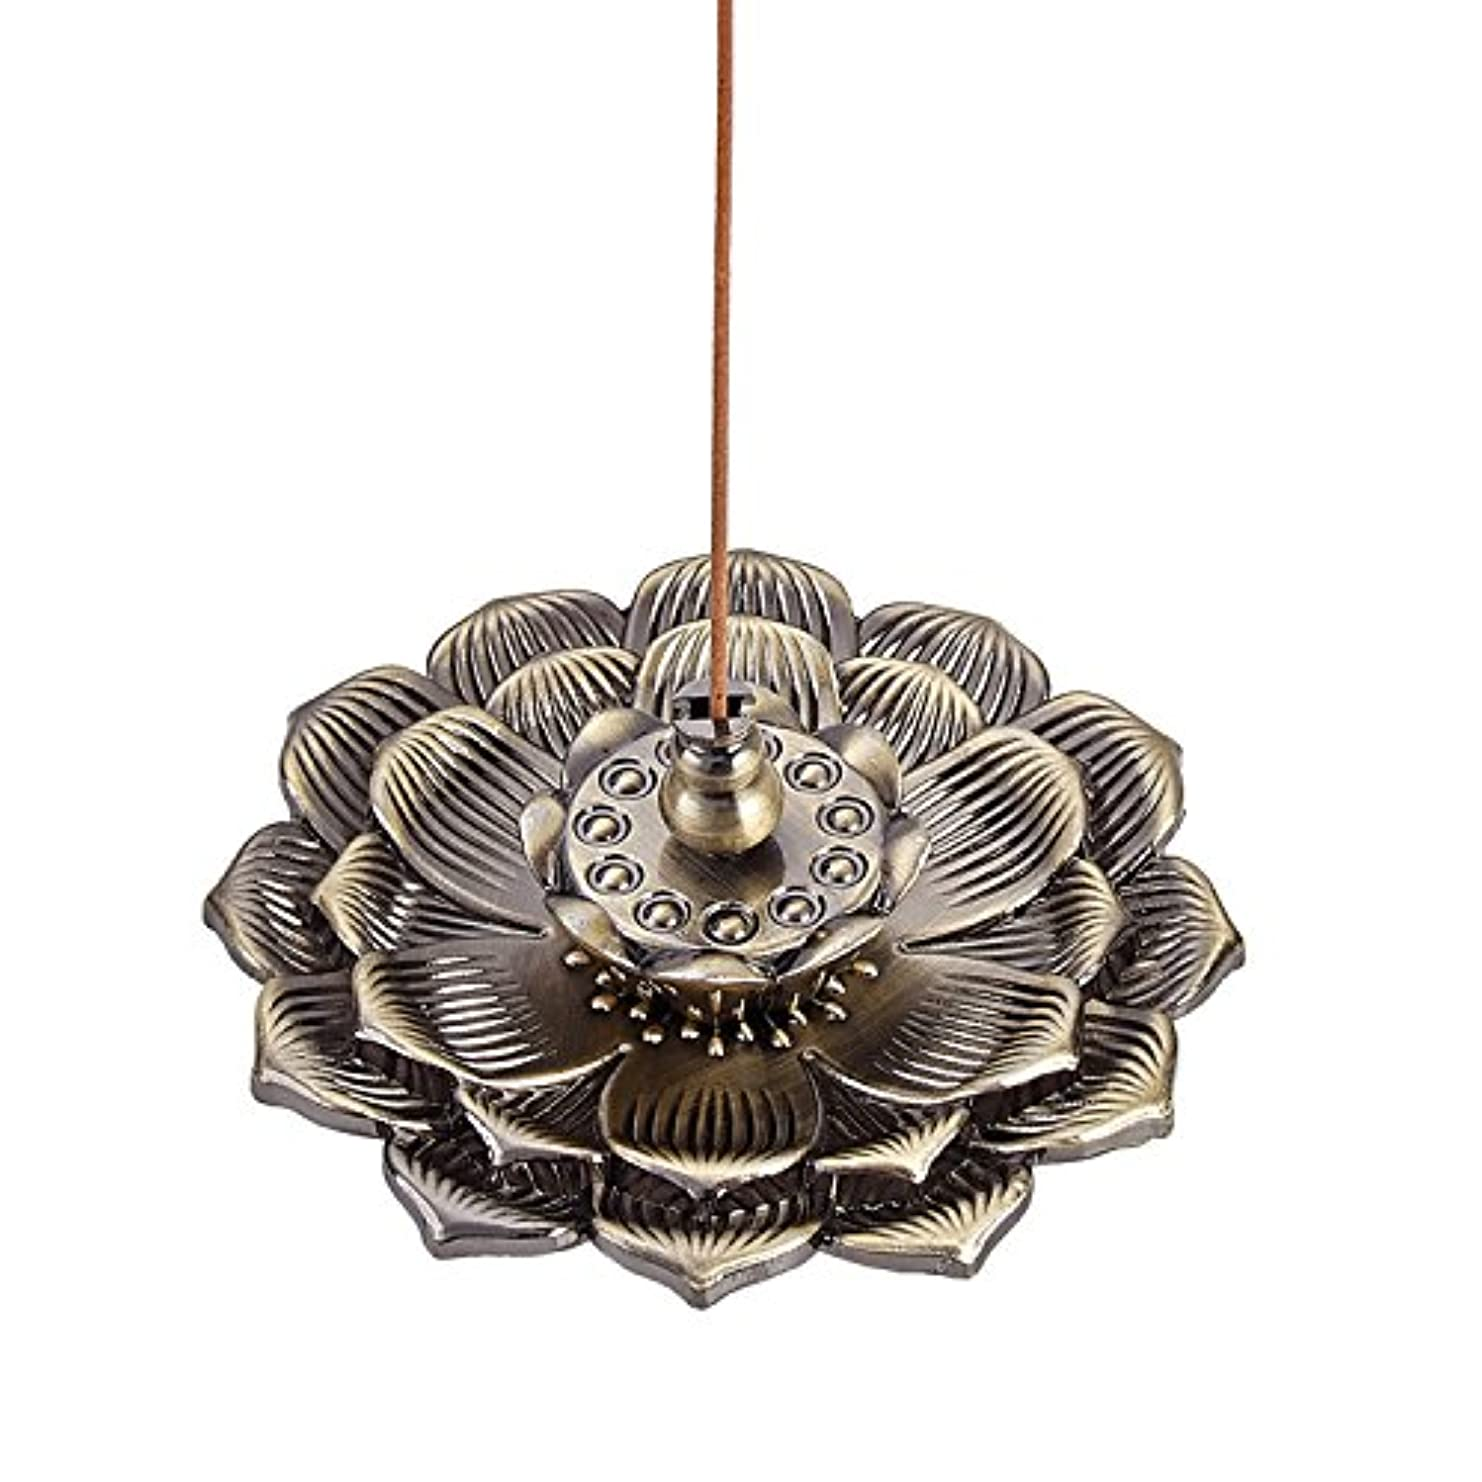 Uoon Hand MadeチベットLotus Flower Religious Incense Burner forスティック、コーンand Coil Incense